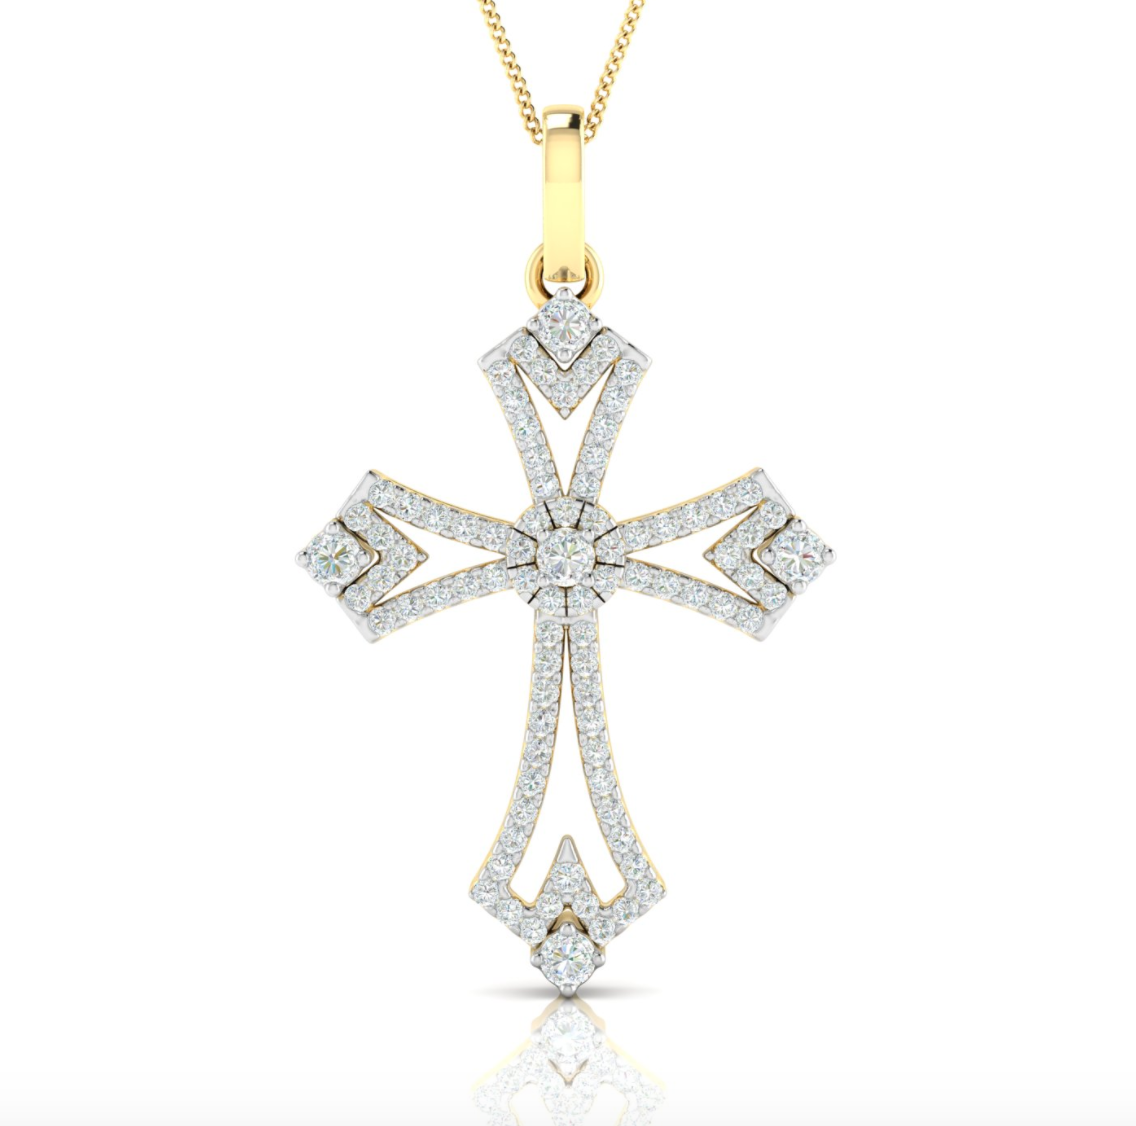 14kt Gold Diamond Cross Slider Pendant Available in White or Yellow Gold